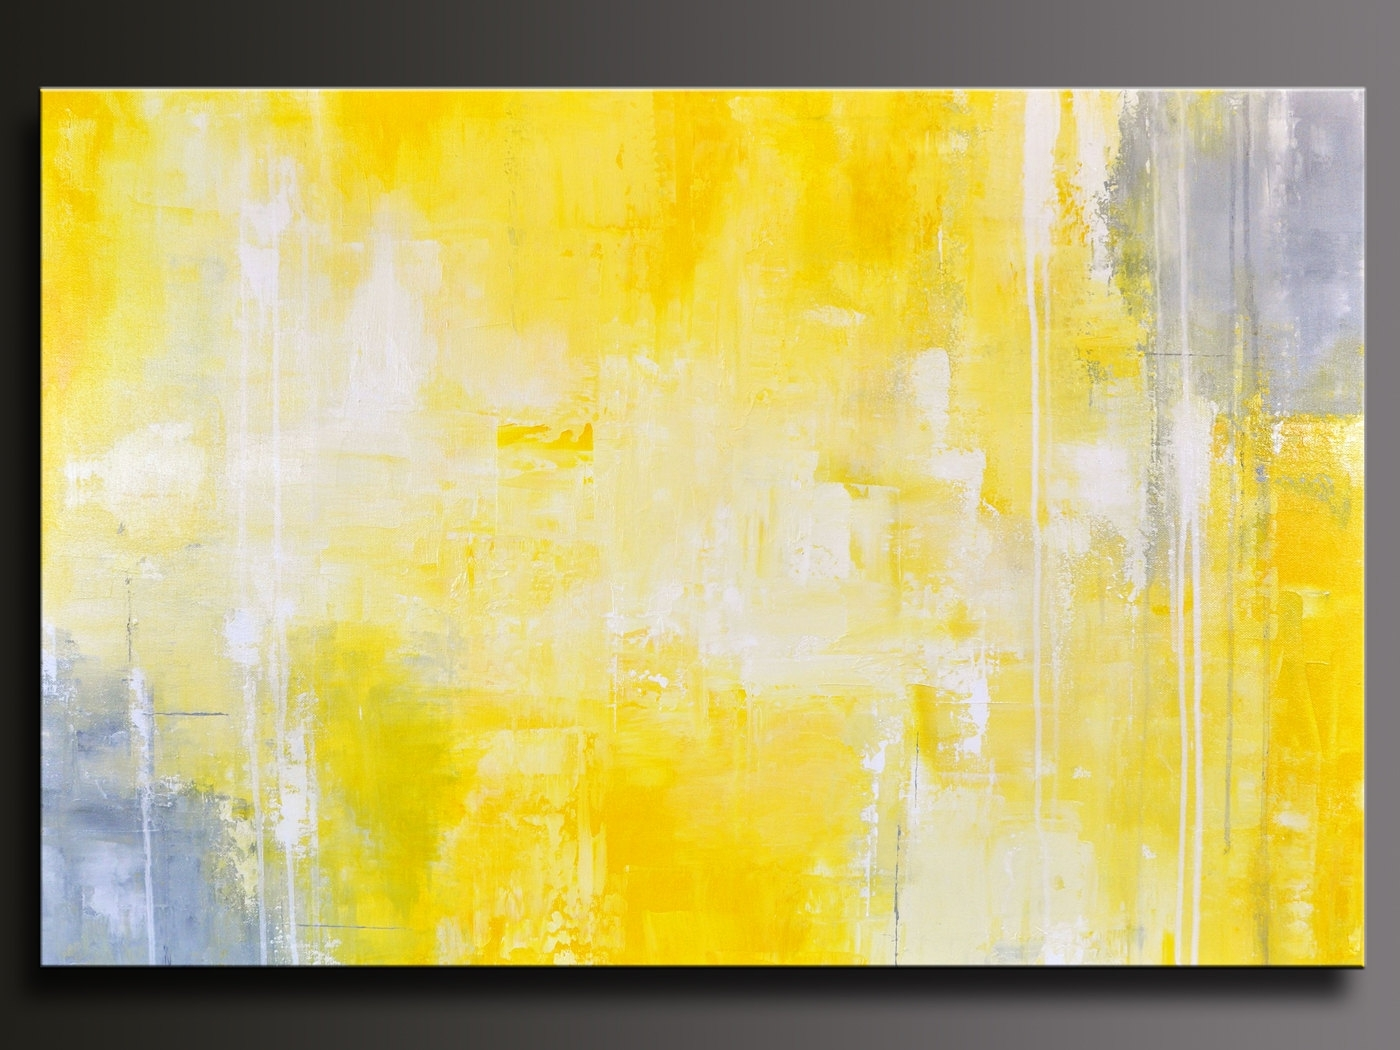 Wall Art Designs: Yellow And Gray Wall Art Diy Wall Art Washington Intended For Most Recently Released Gray Abstract Wall Art (View 7 of 15)